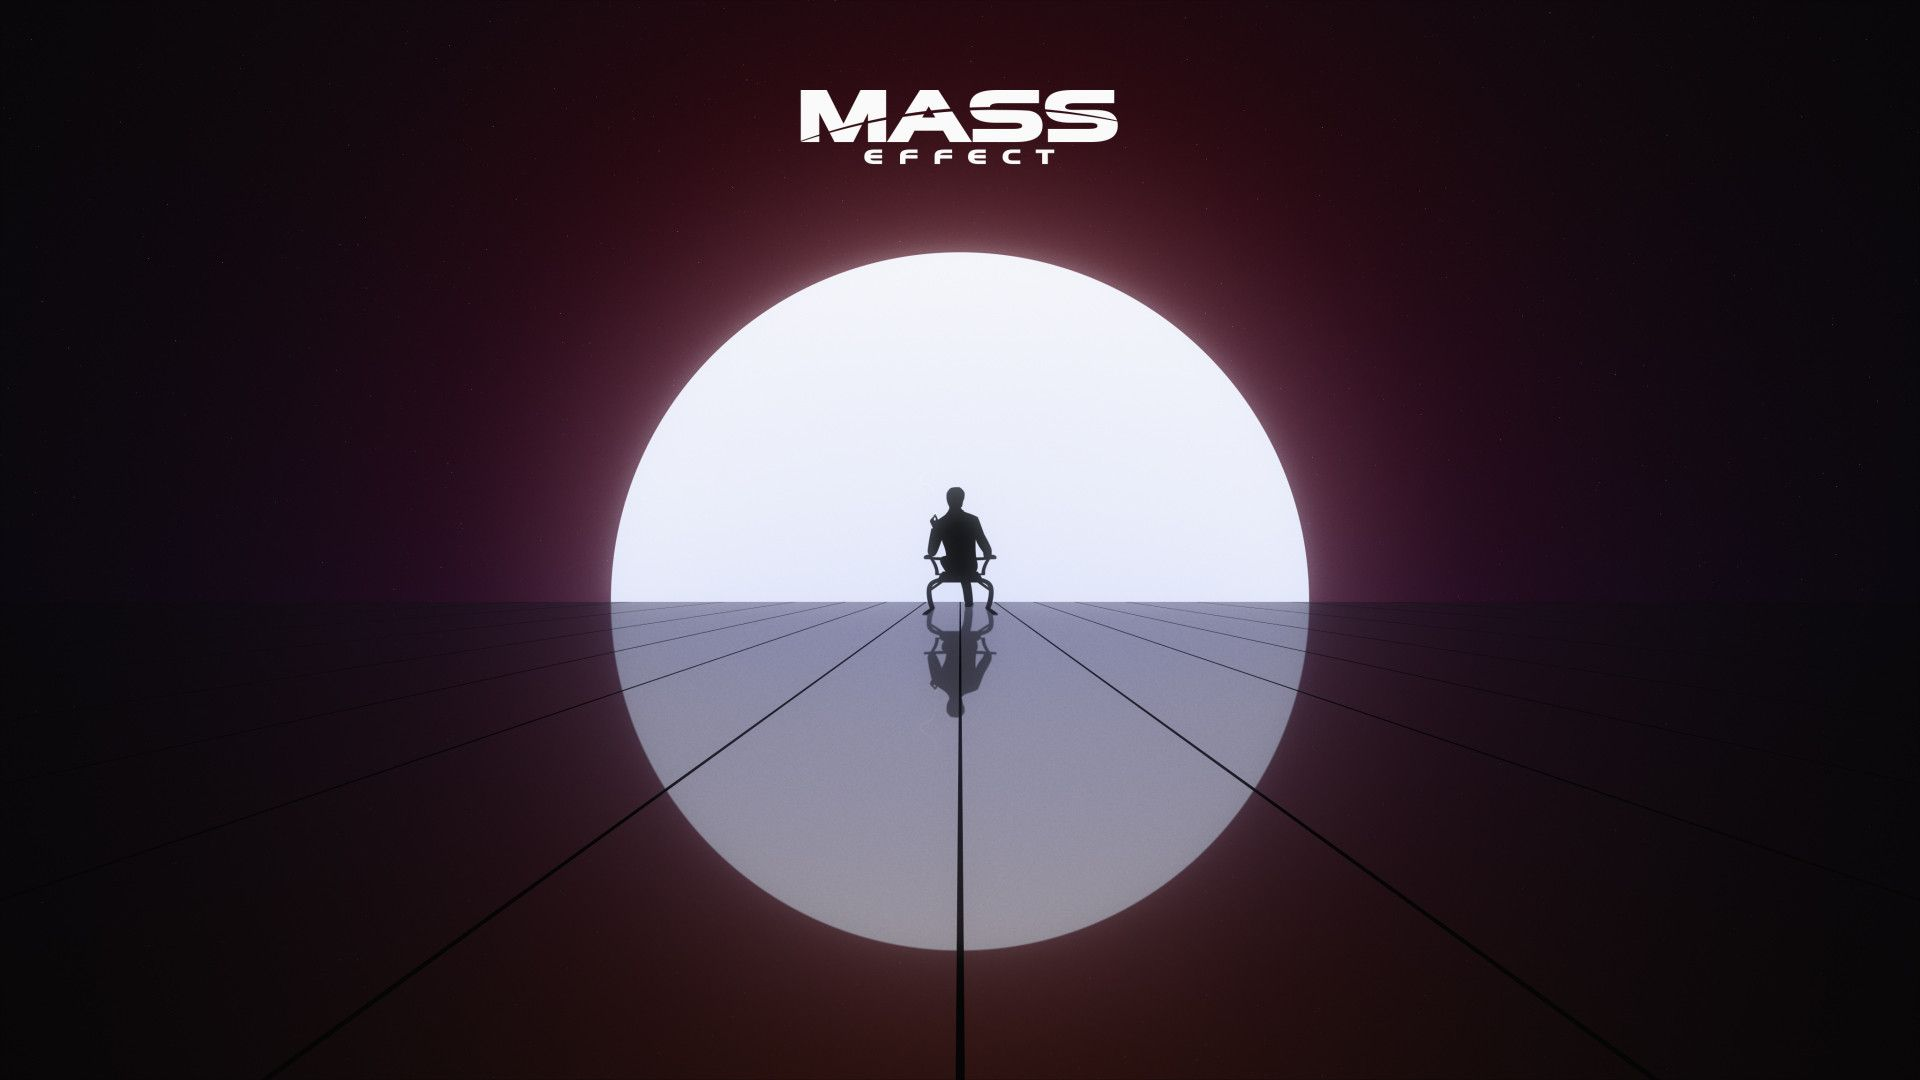 mass effect wallpapers album on imgur android pinterest